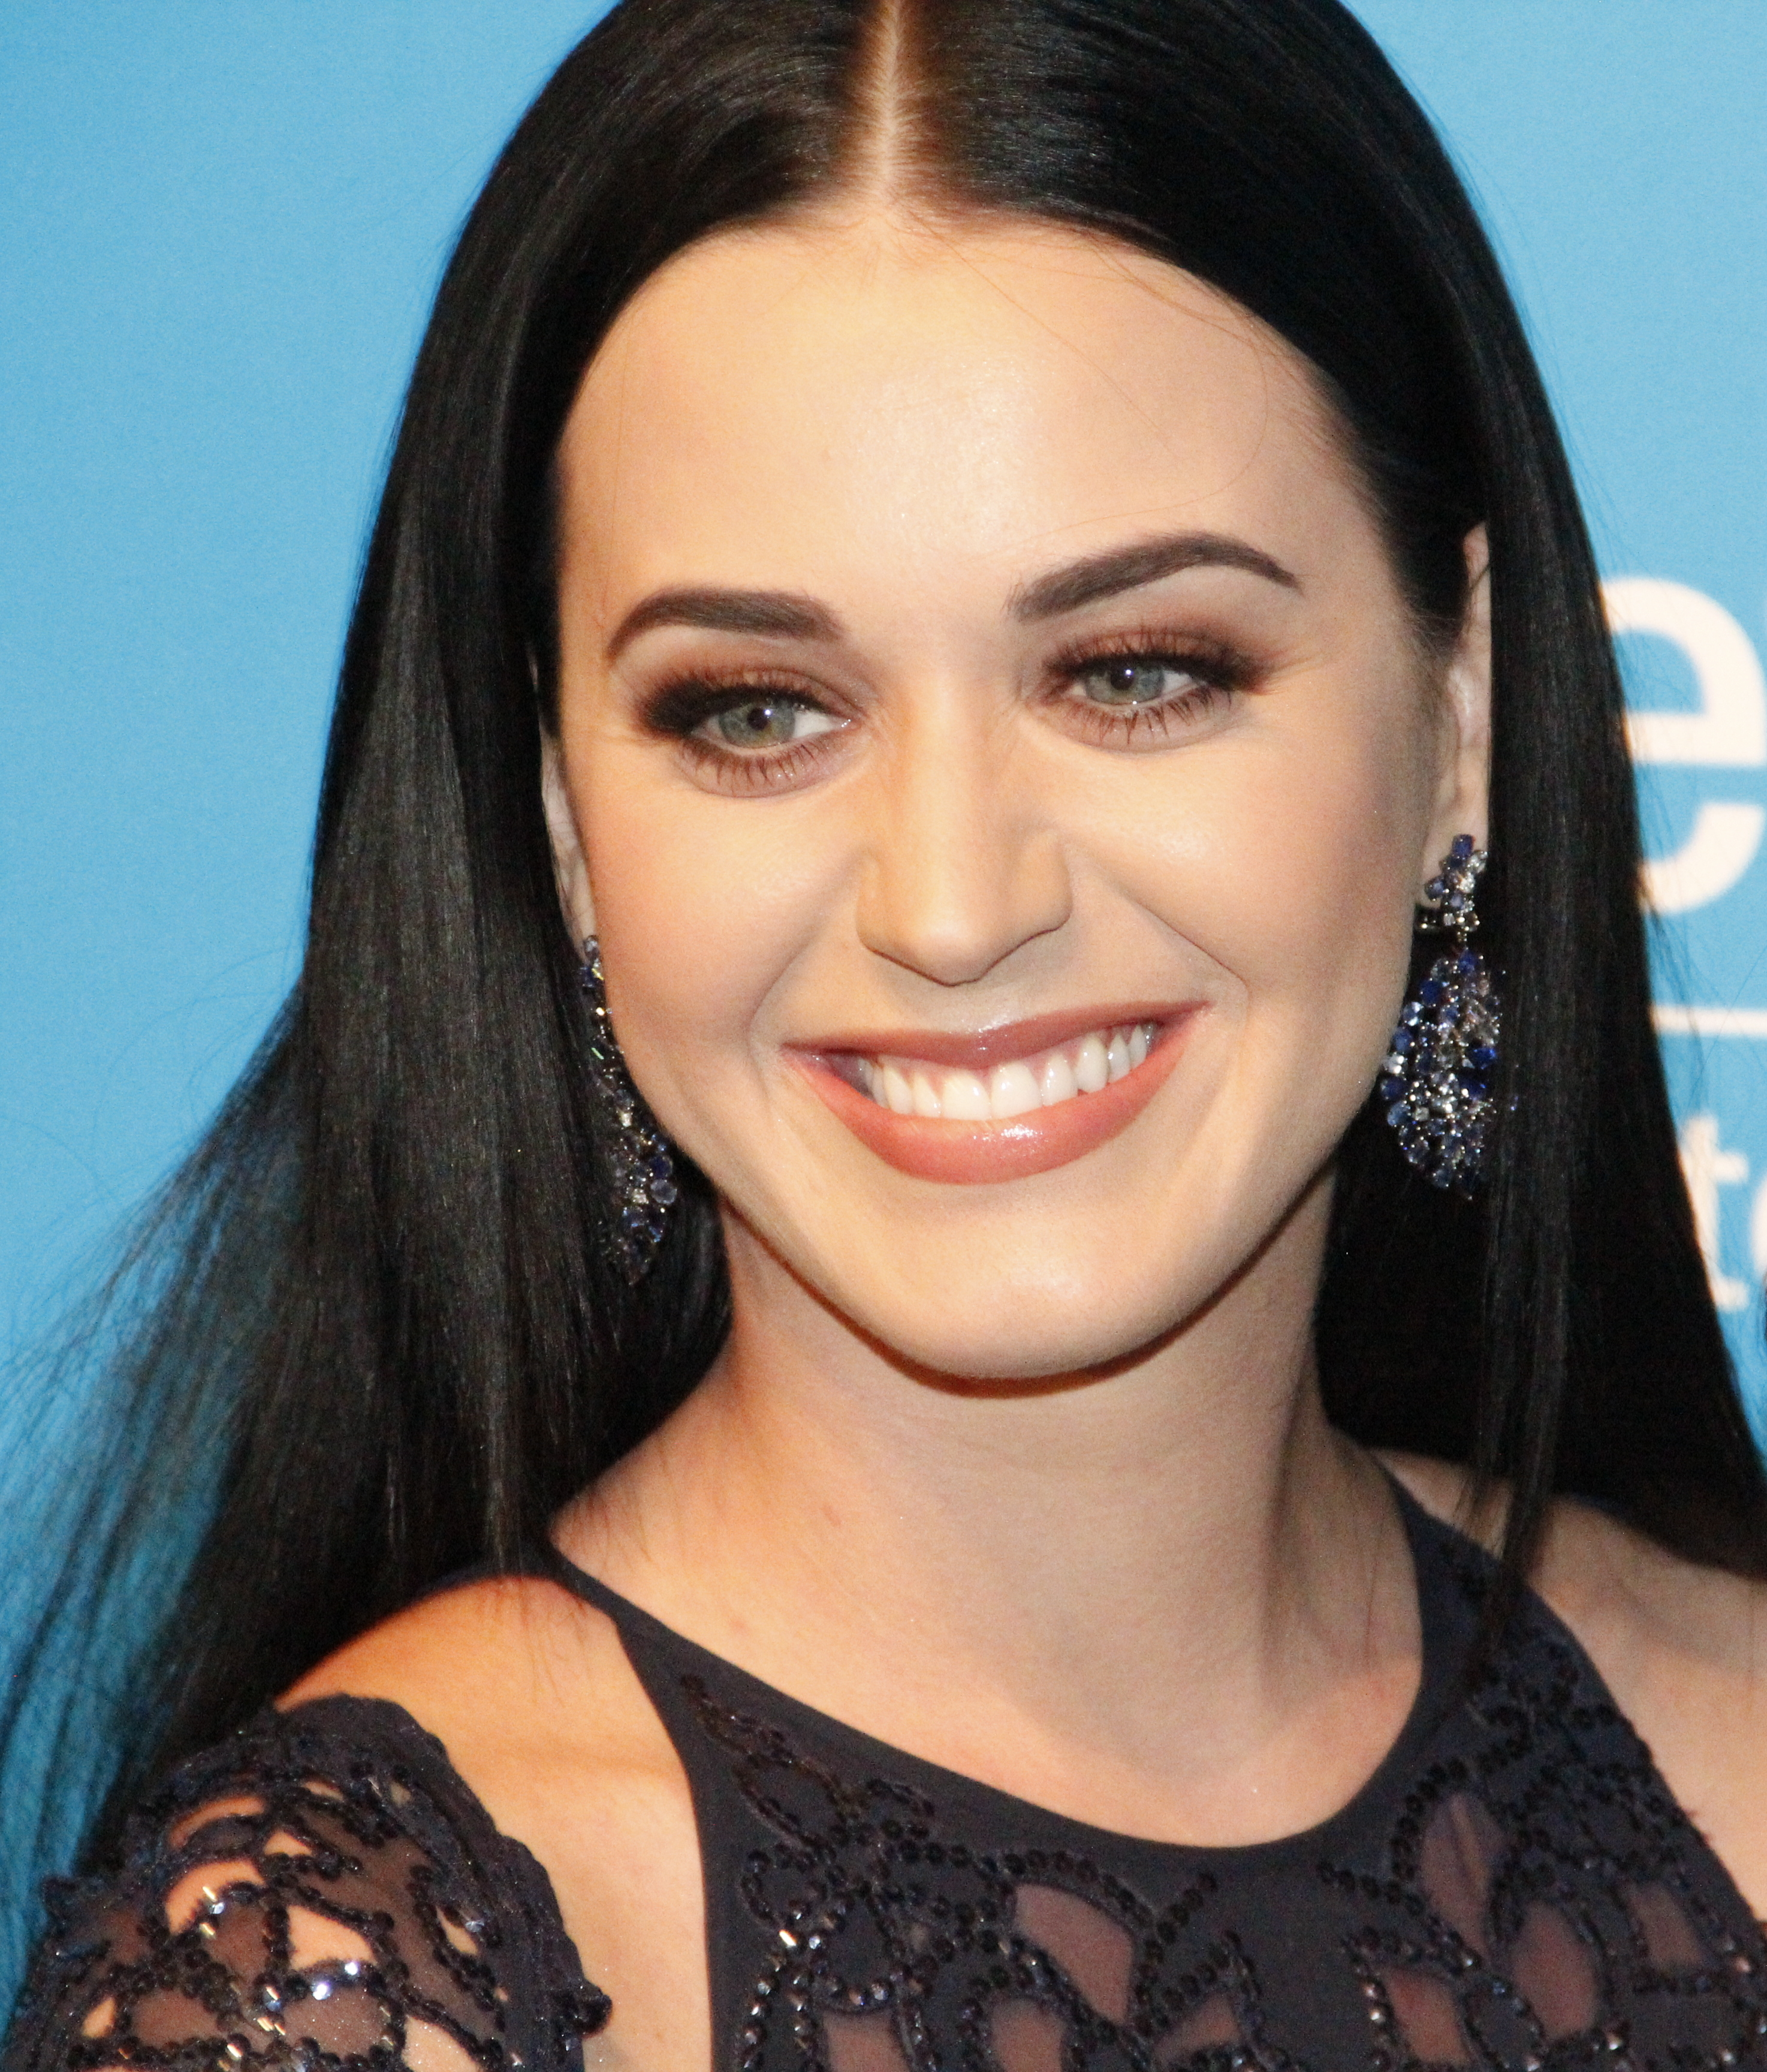 Description Katy Perry UNICEF 2012.jpg